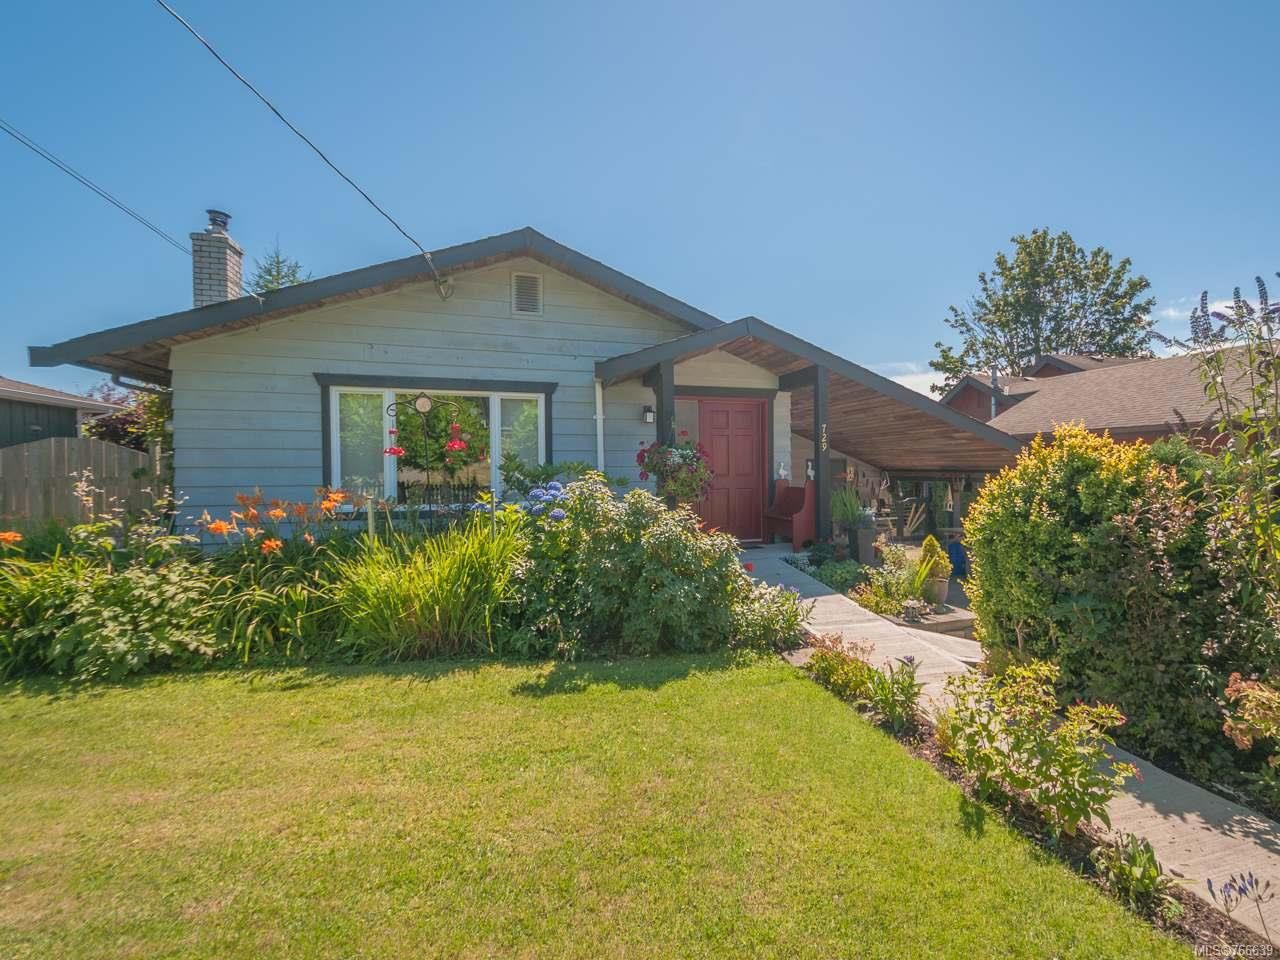 Main Photo: 729 ELAND DRIVE in CAMPBELL RIVER: CR Campbell River Central House for sale (Campbell River)  : MLS®# 766639